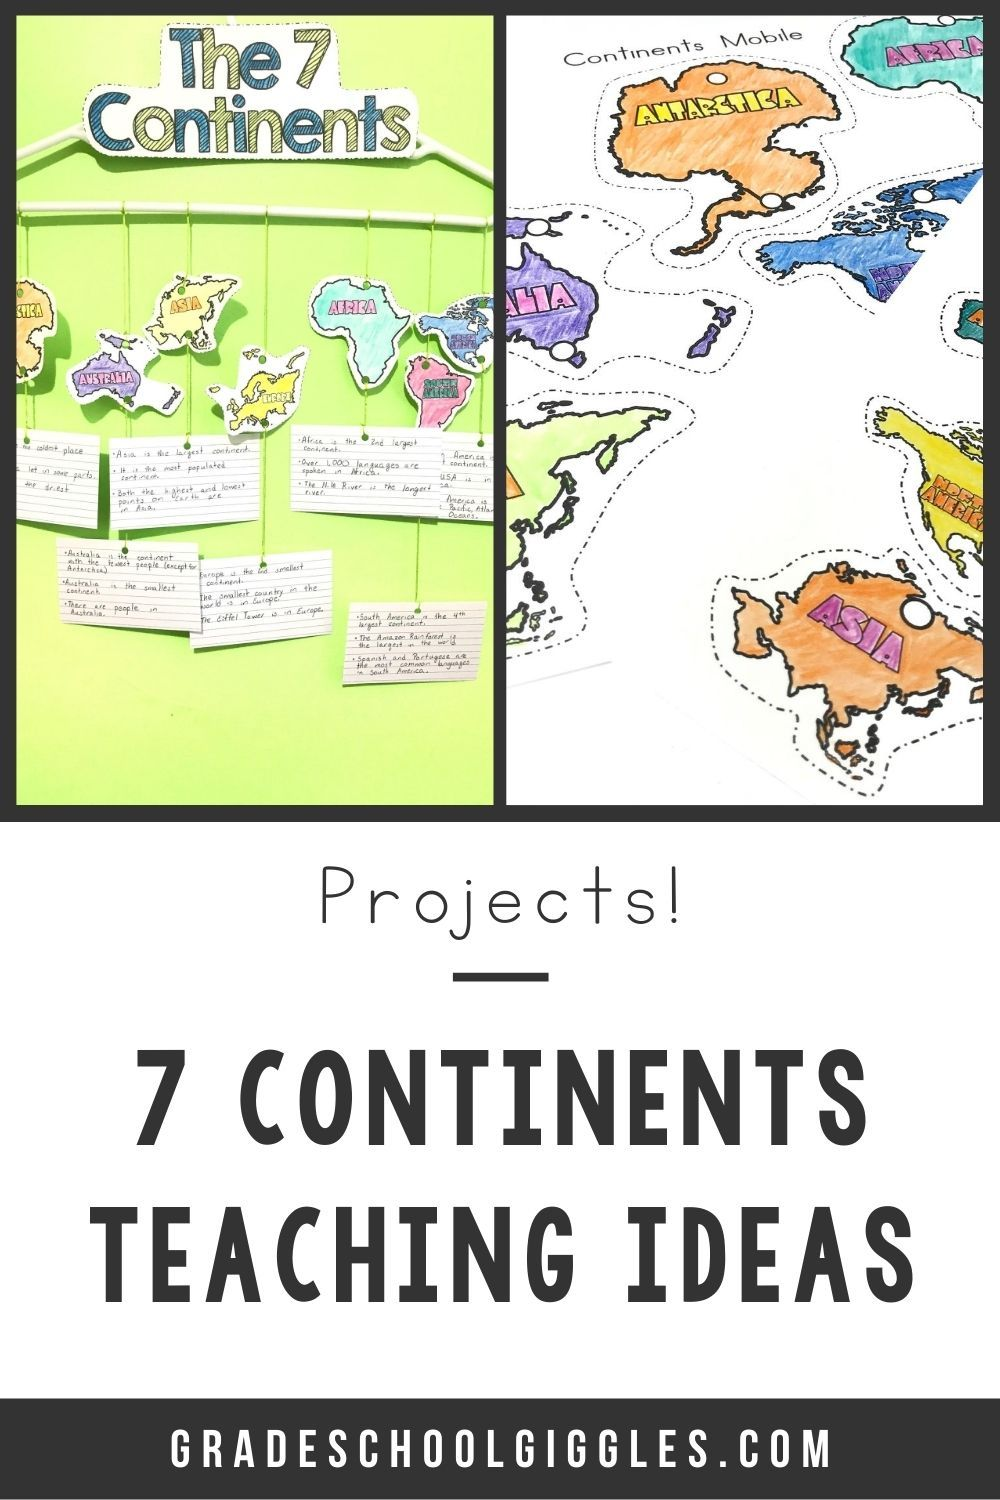 How To Make An Easy 7 Continents Necklace With Your Kids Grade School Giggles Third Grade Social Studies Projects Continents Activities Third Grade Social Studies [ 1500 x 1000 Pixel ]